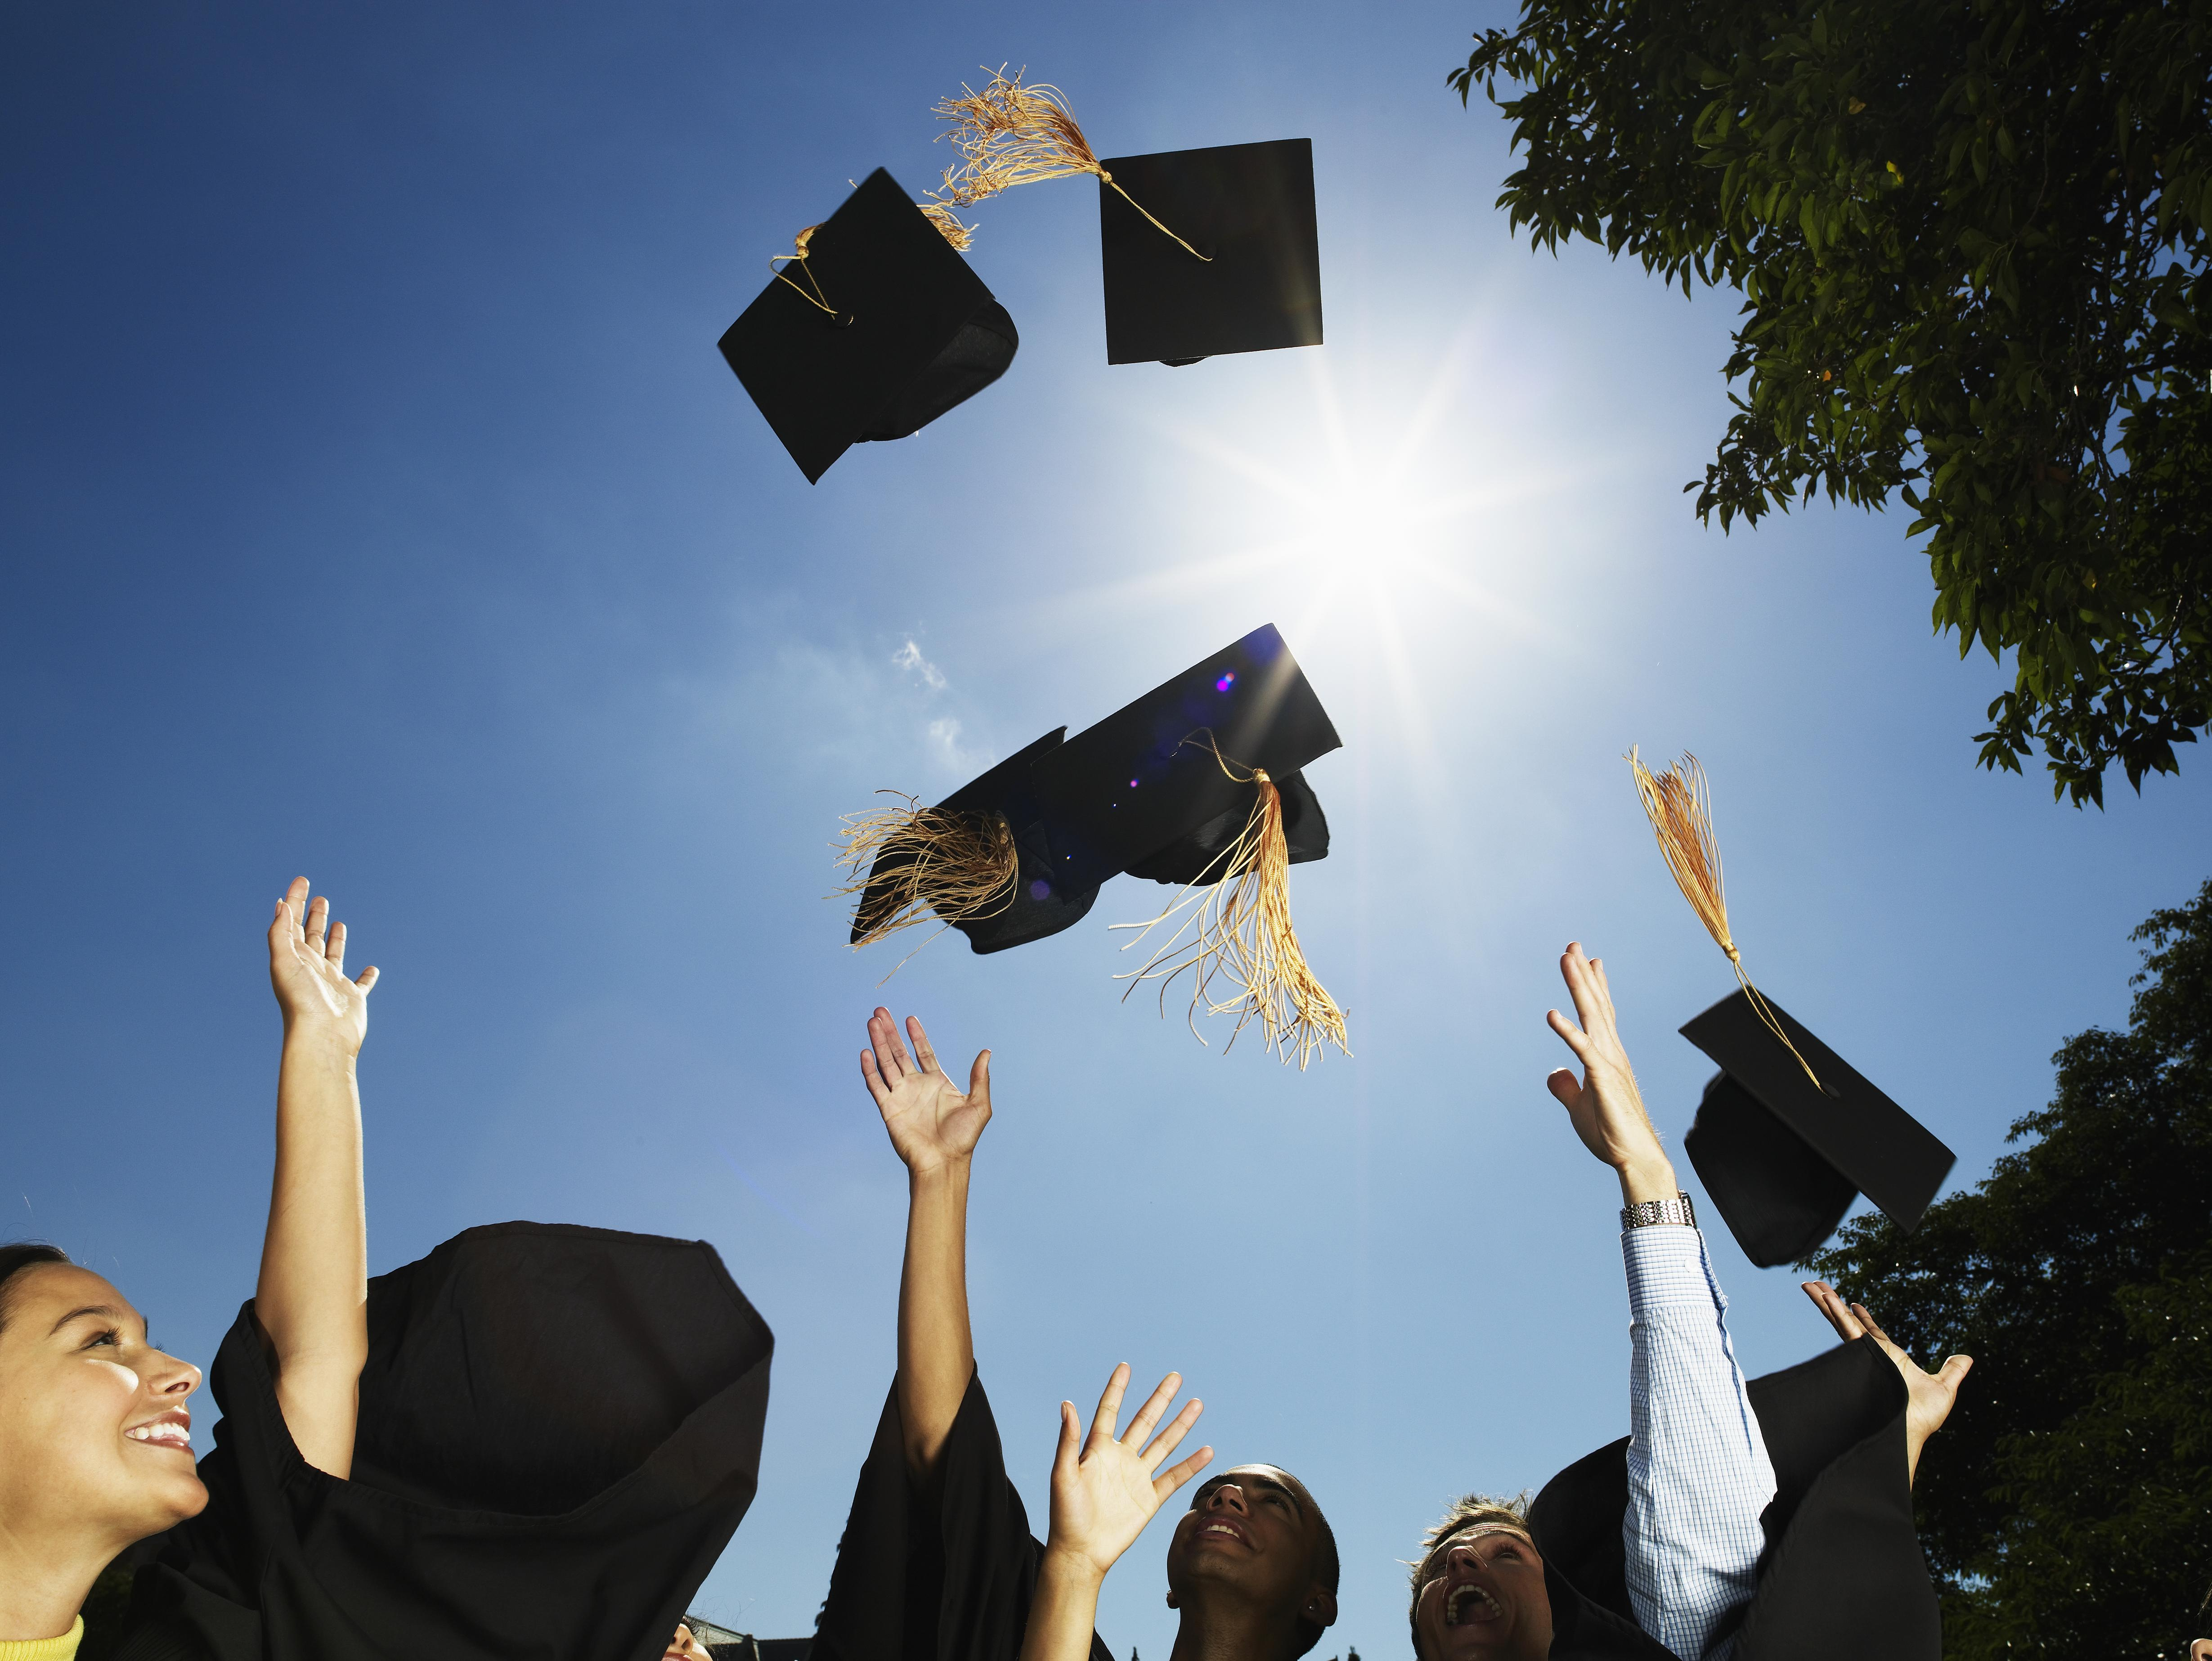 Group of graduates throwing mortar boards in air